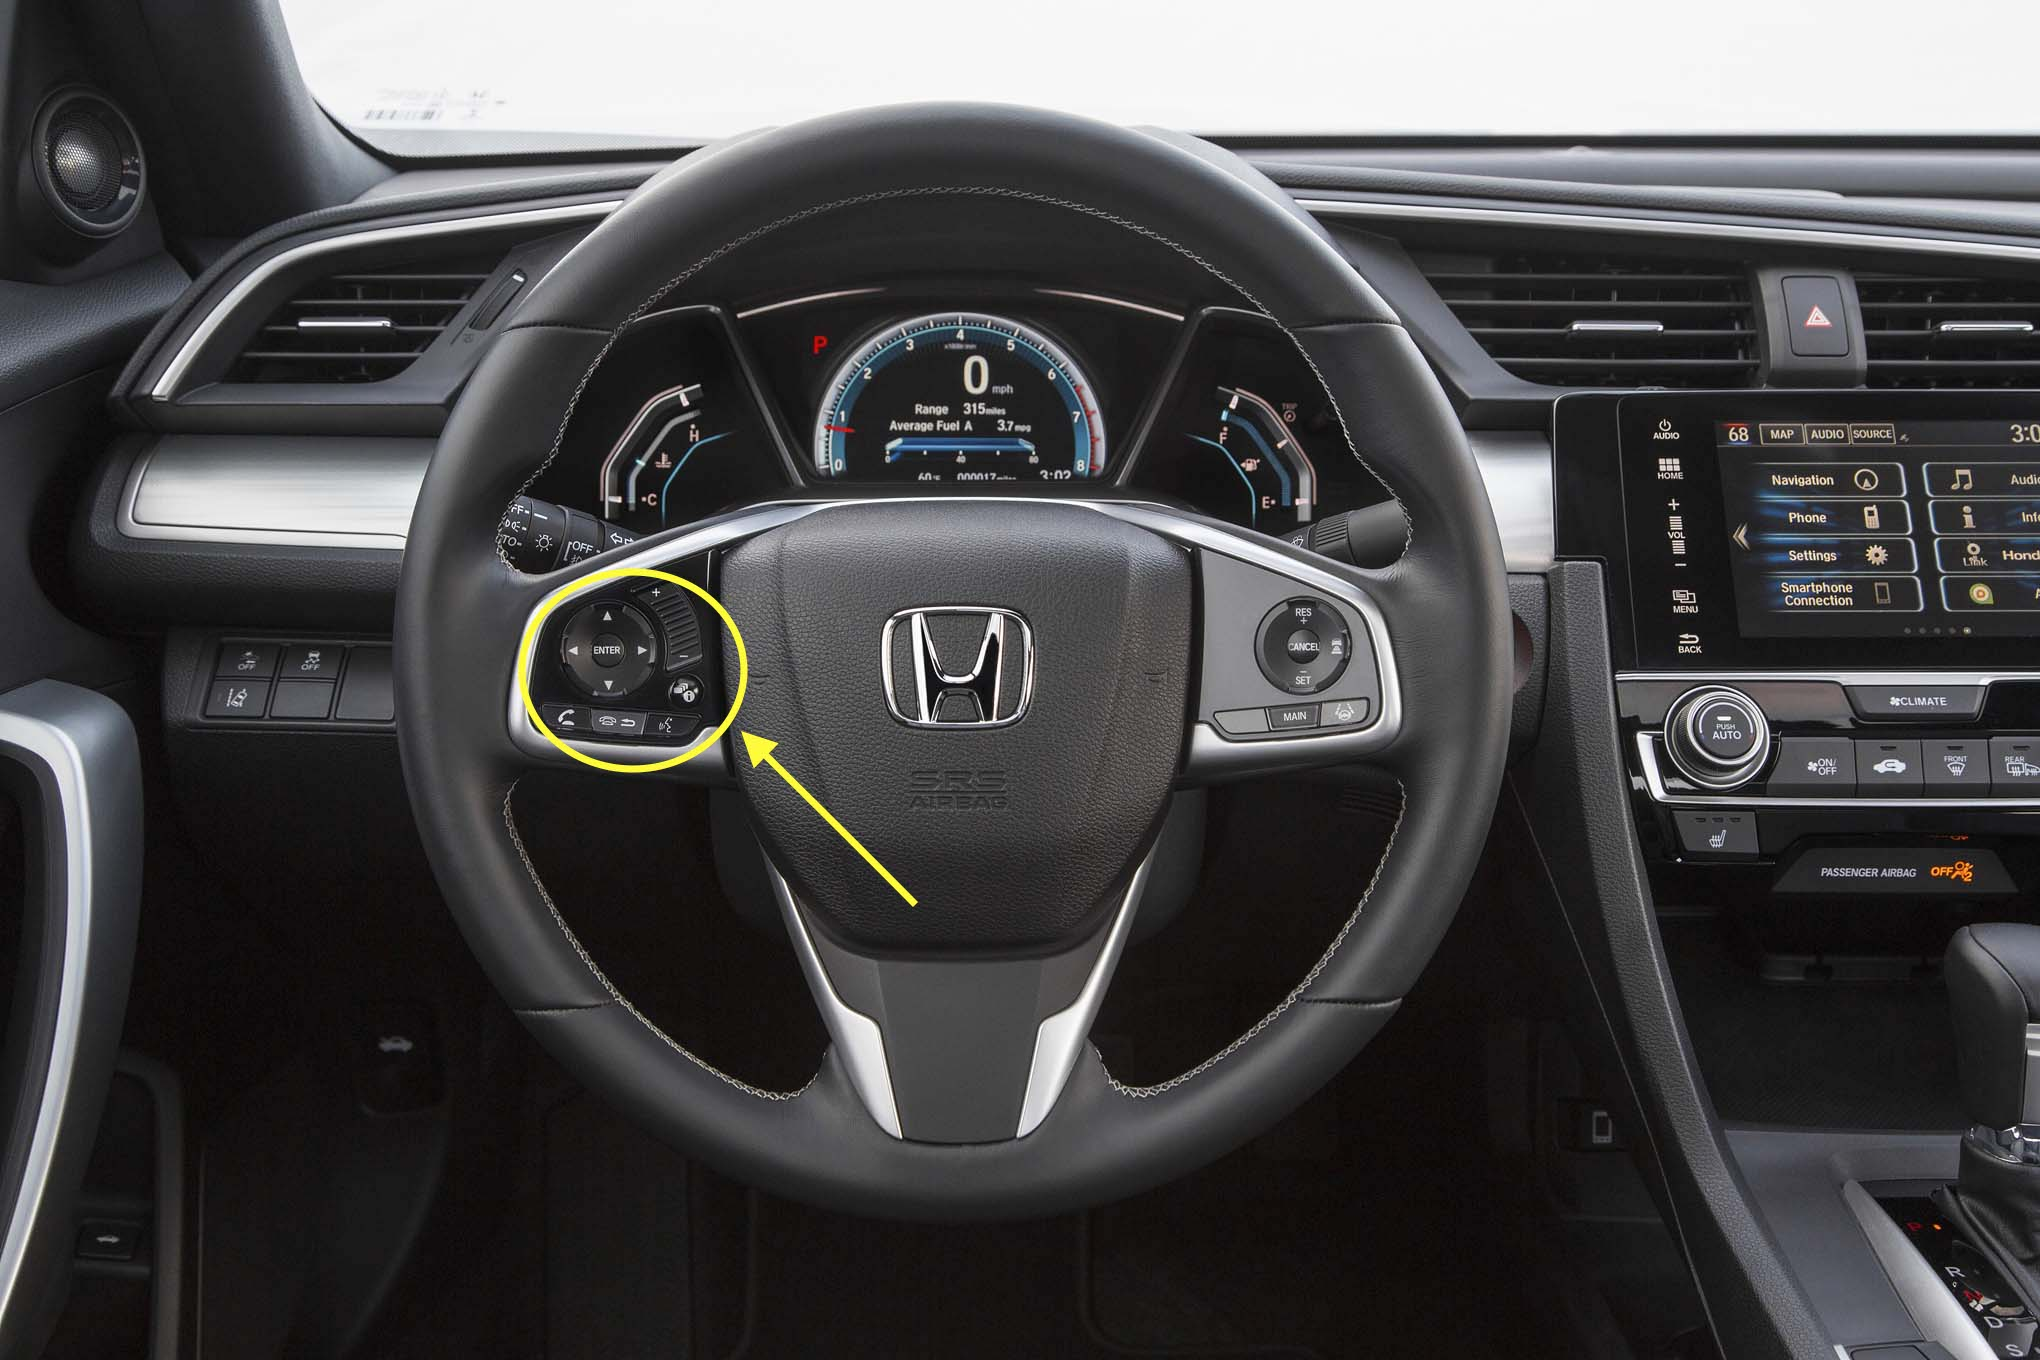 2017 Honda Civic Steering Wheel Controls